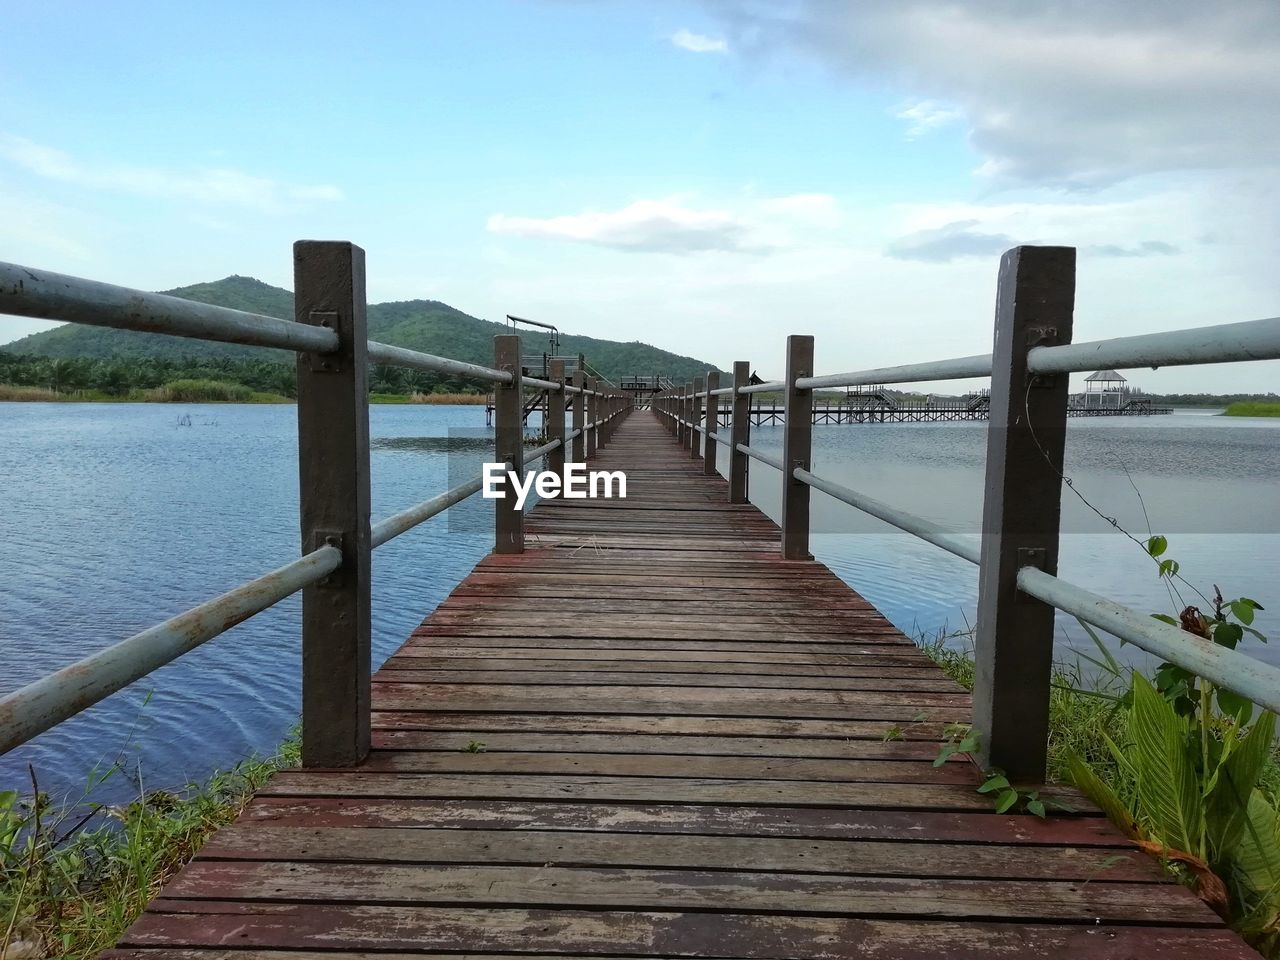 sky, water, wood - material, direction, the way forward, railing, tranquility, nature, tranquil scene, cloud - sky, pier, beauty in nature, scenics - nature, built structure, day, sea, no people, architecture, wood, diminishing perspective, wood paneling, outdoors, long